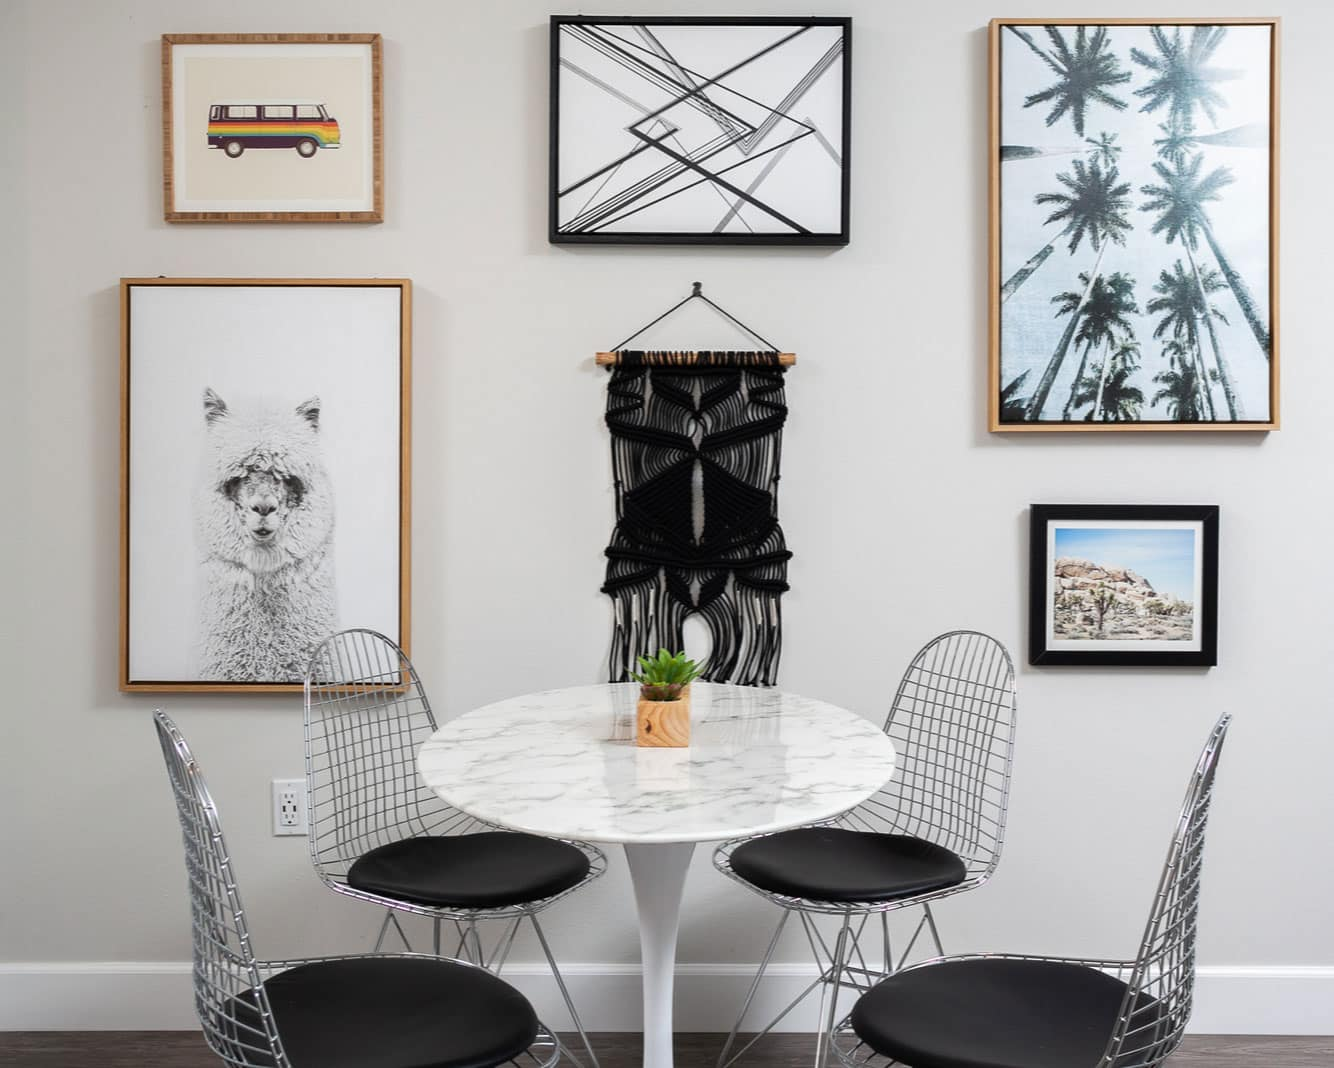 Dining area with marble round table and four metal chairs and paintings on the wall